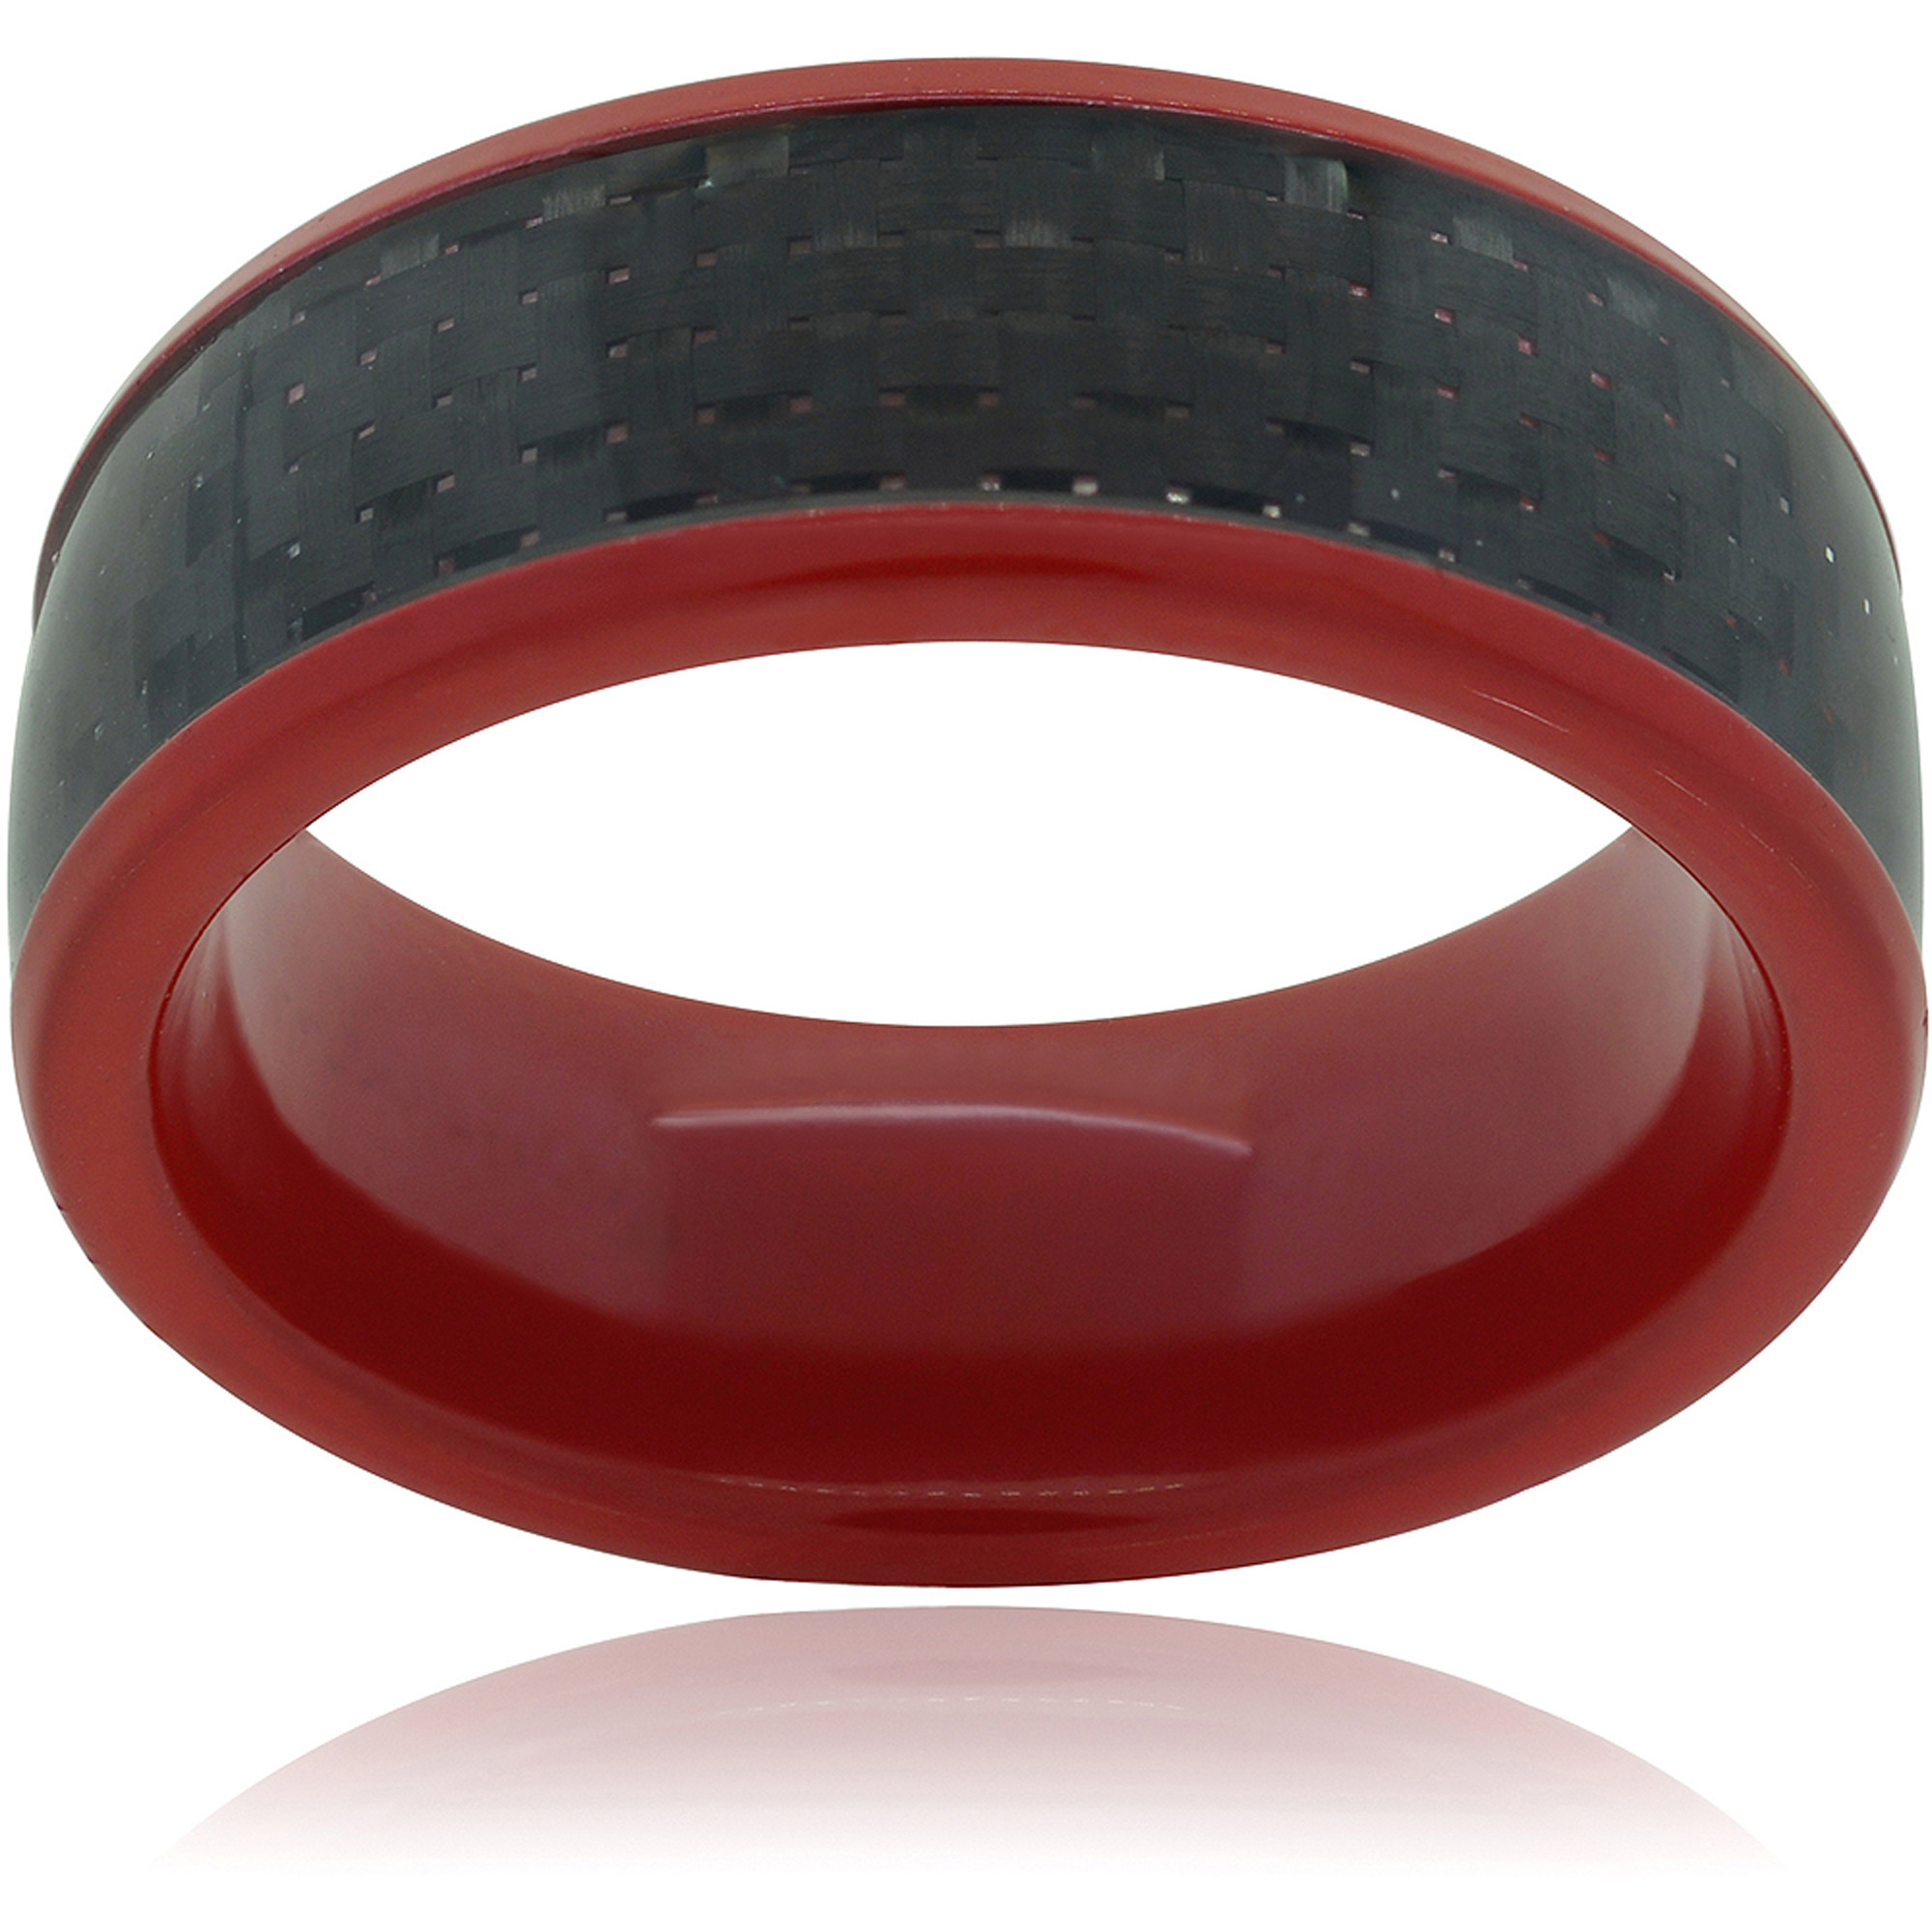 Daxx Men's Titanium Carbon Fiber Inlay Pipe-Cut Fashion Ring